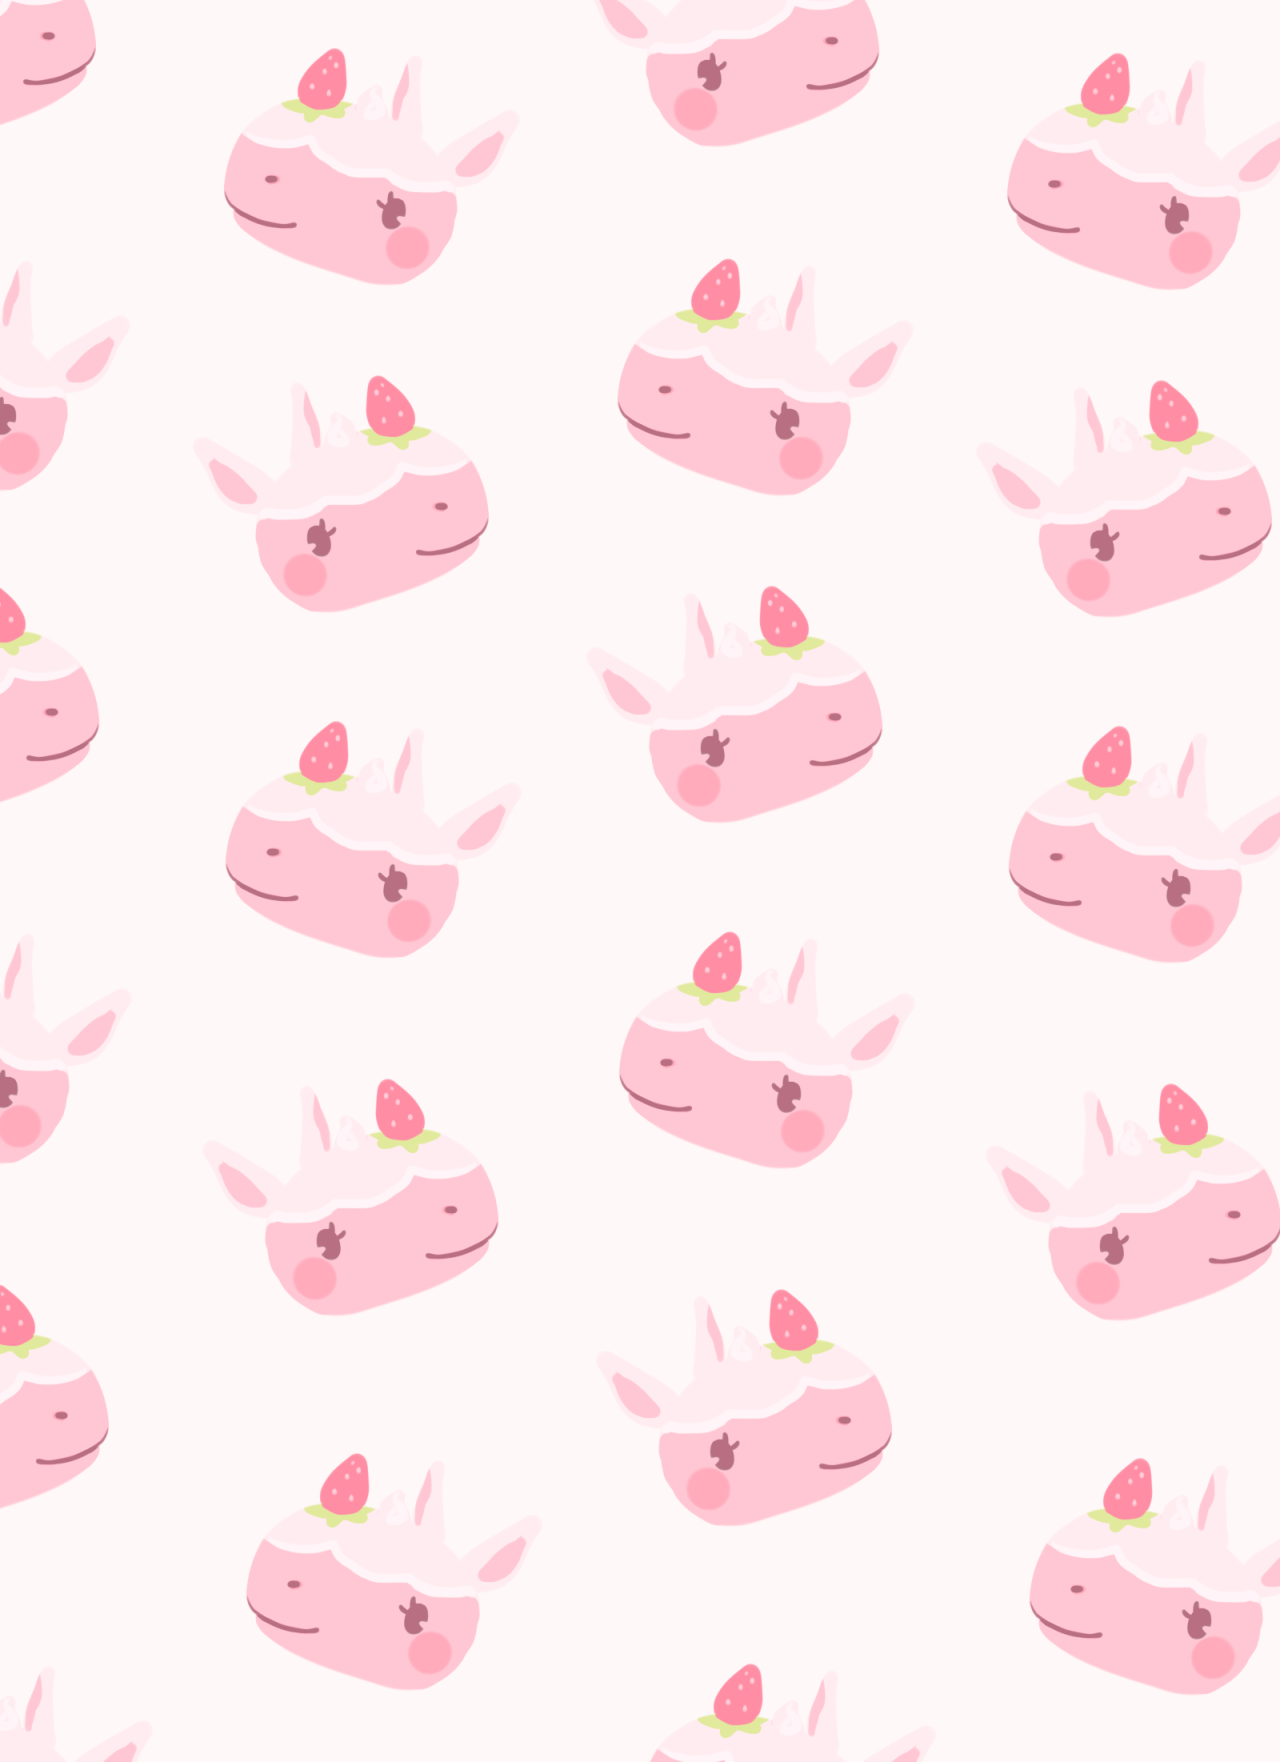 Made This Bg For The Merengue Pic But It Was Too Overwhelming But I Thought It Loo Animal Crossing Fan Art Animal Crossing Characters Animal Crossing Villagers